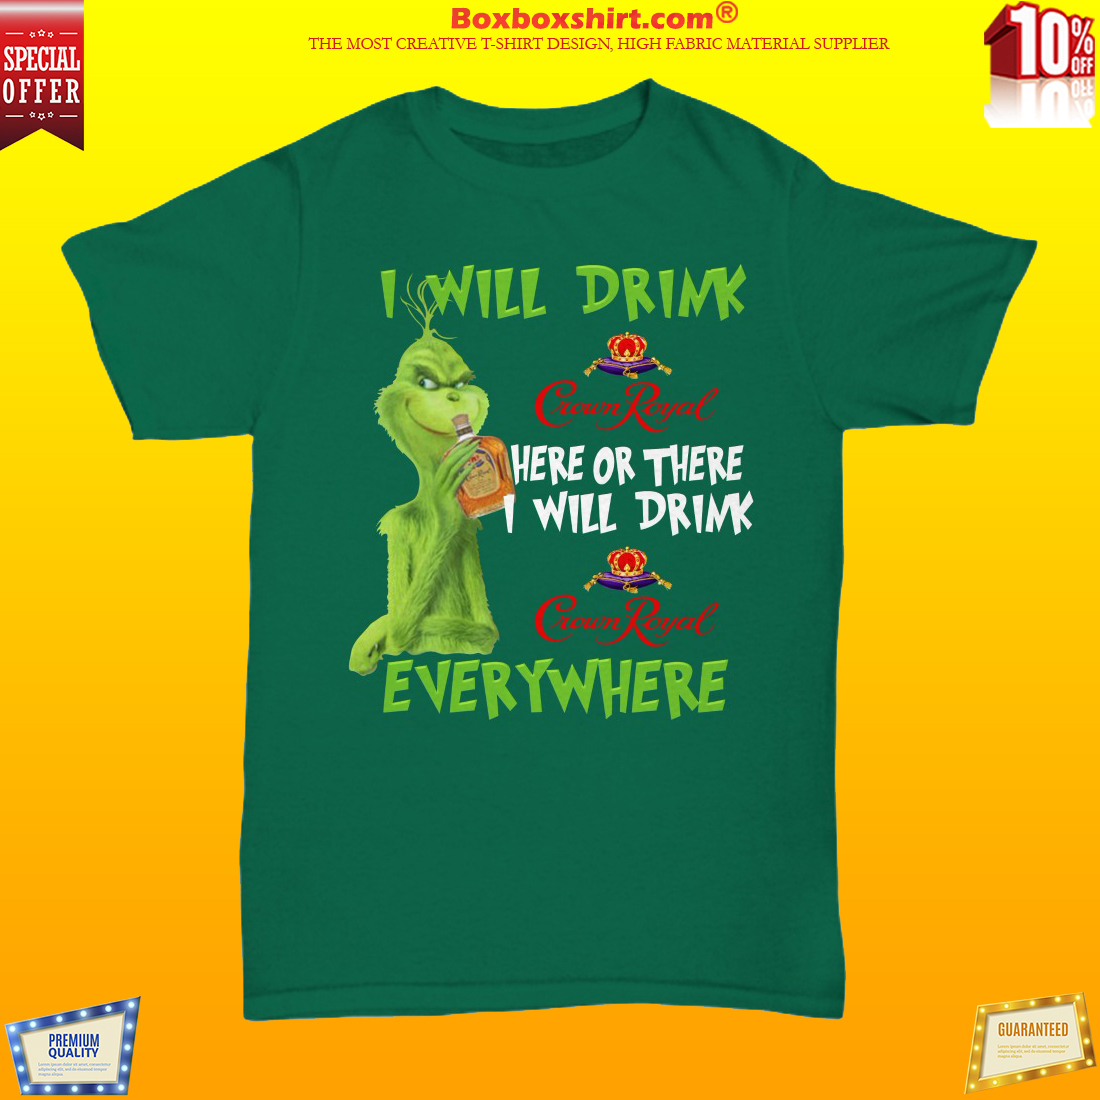 Grinch I will drink Crown Royal here there everywhere shirt